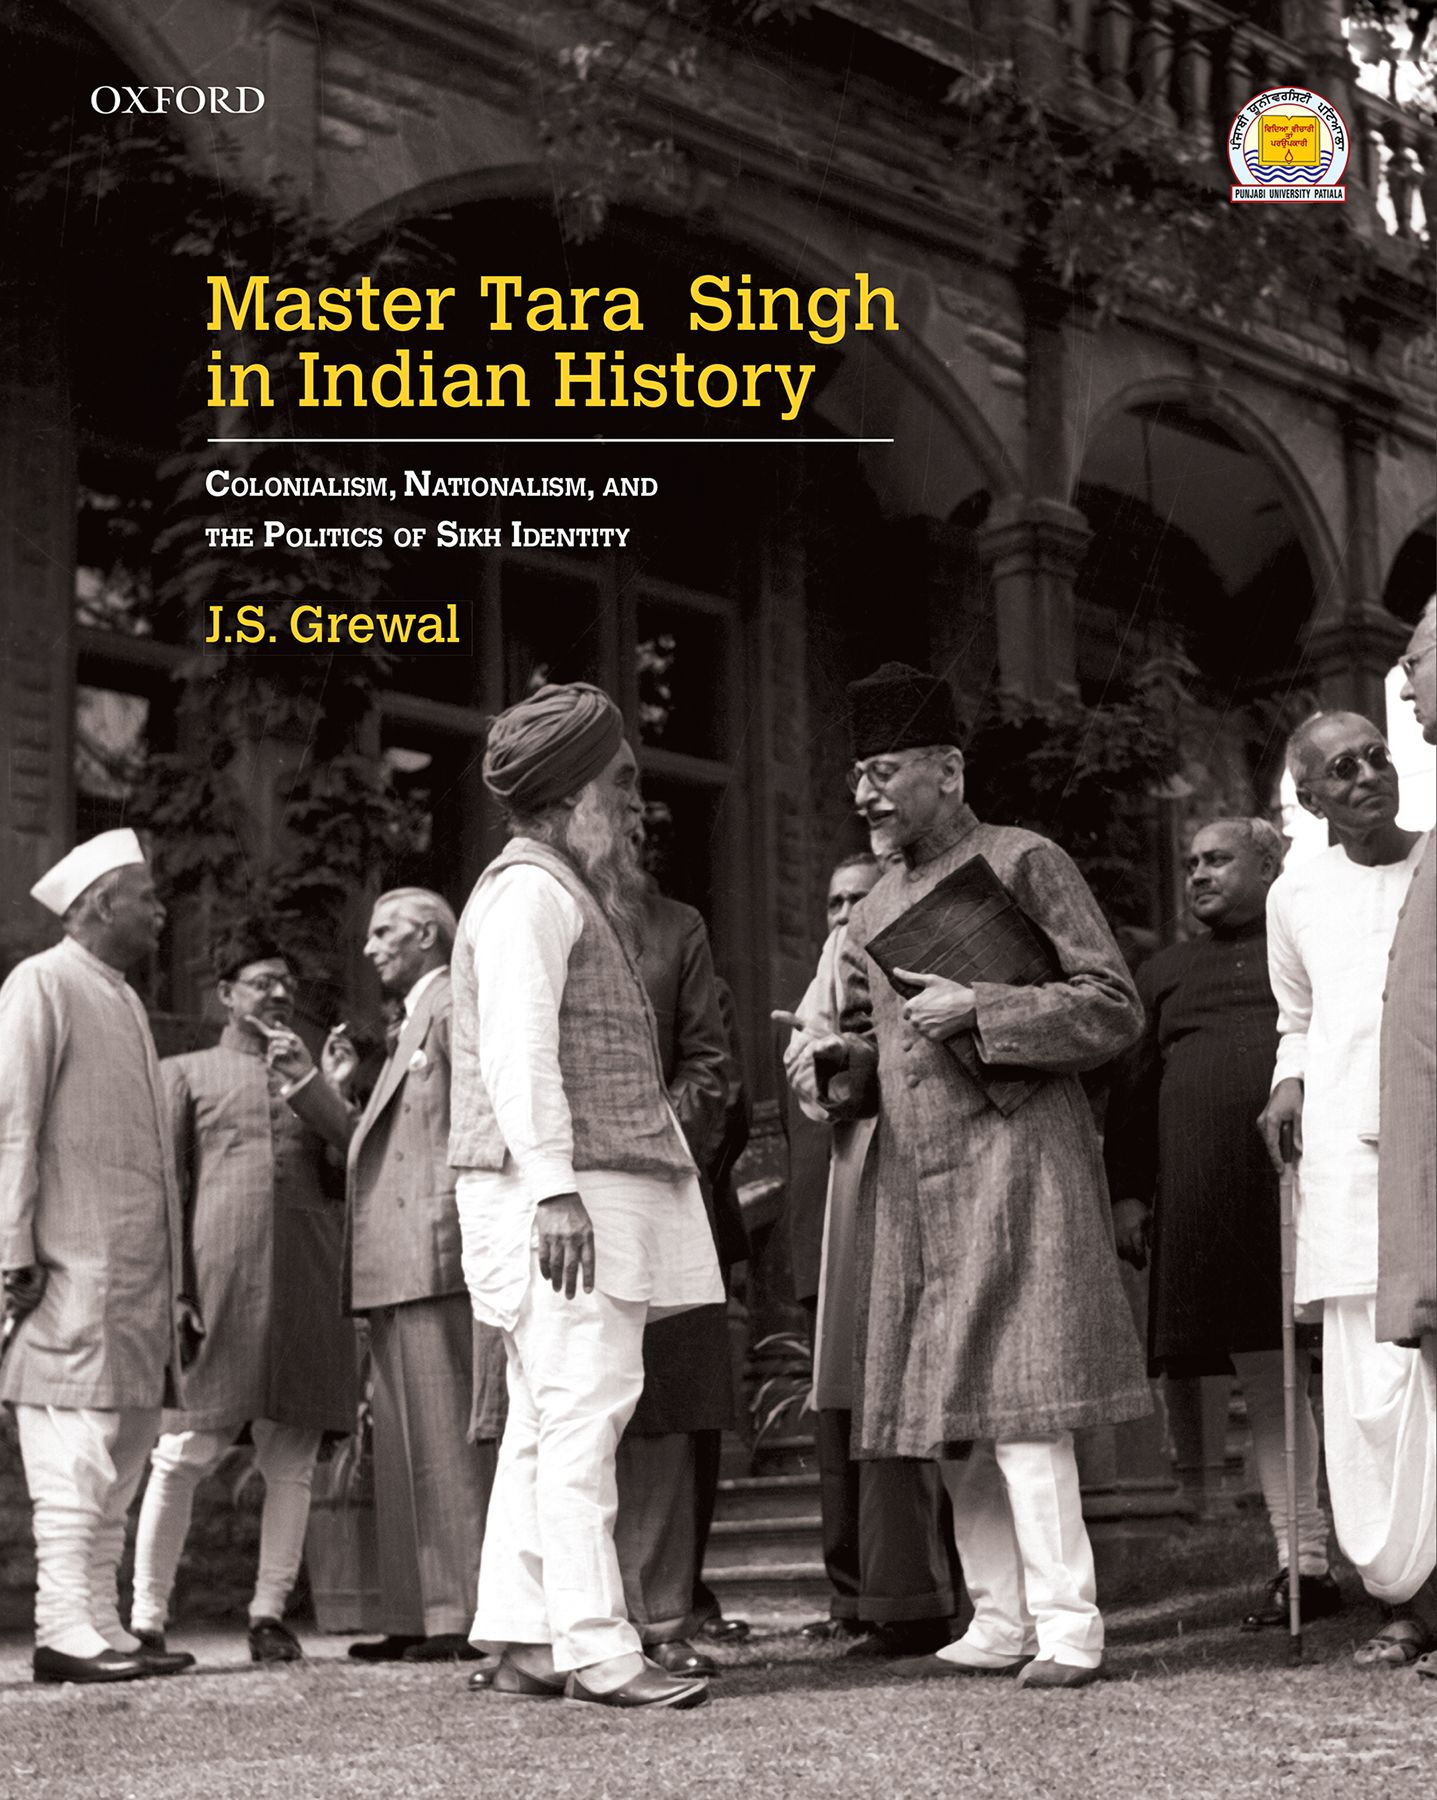 Master Tara Singh in Indian History - Subtitle Colonialism, Nationalism, and the Politics of Sikh Identity